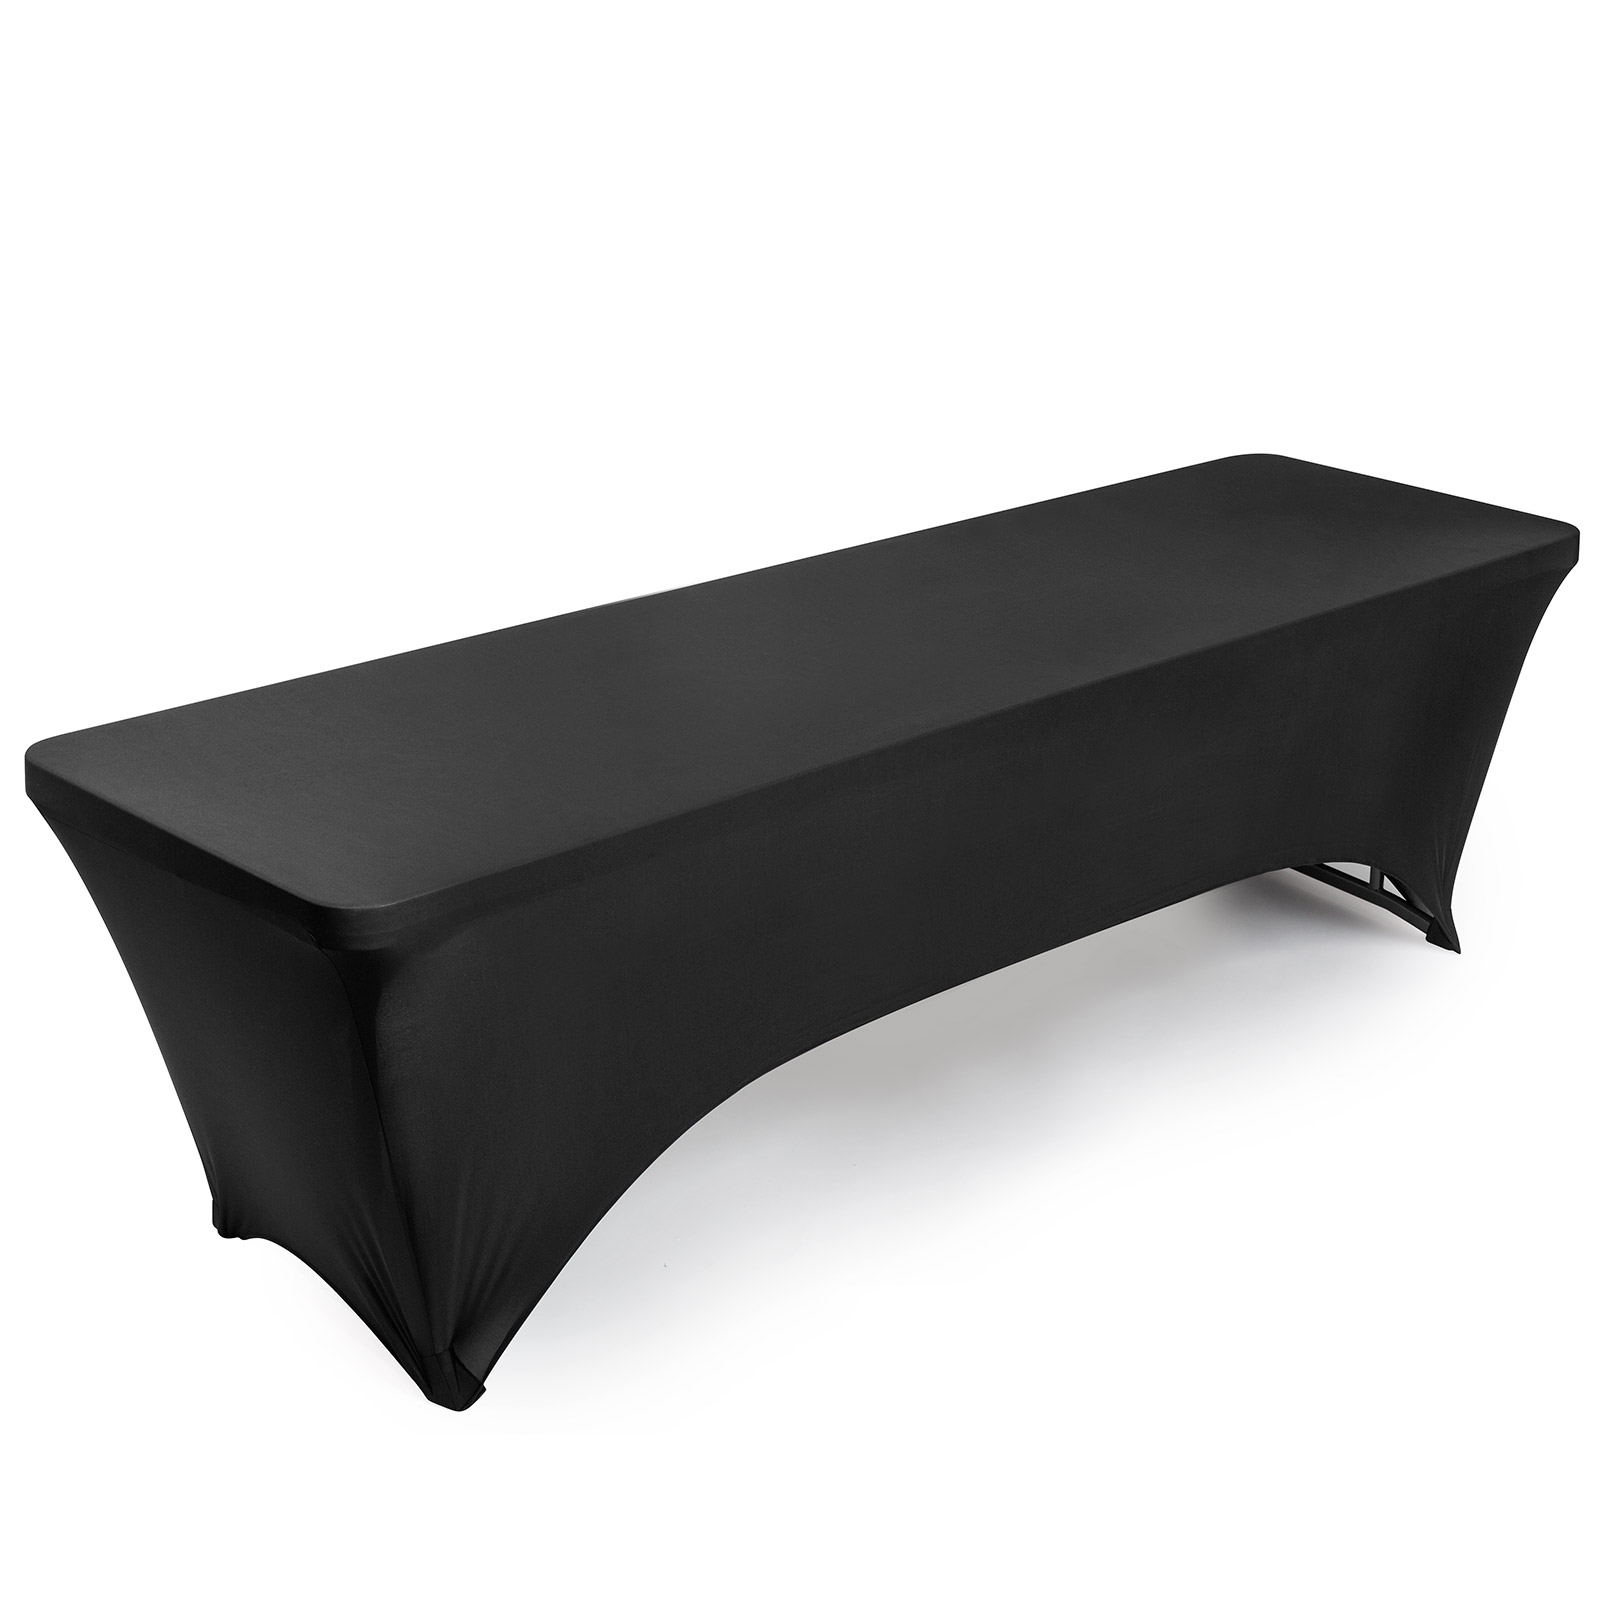 Many Colors /& Sizes Fitted Spandex Stretch Fabric Tablecloth Cover